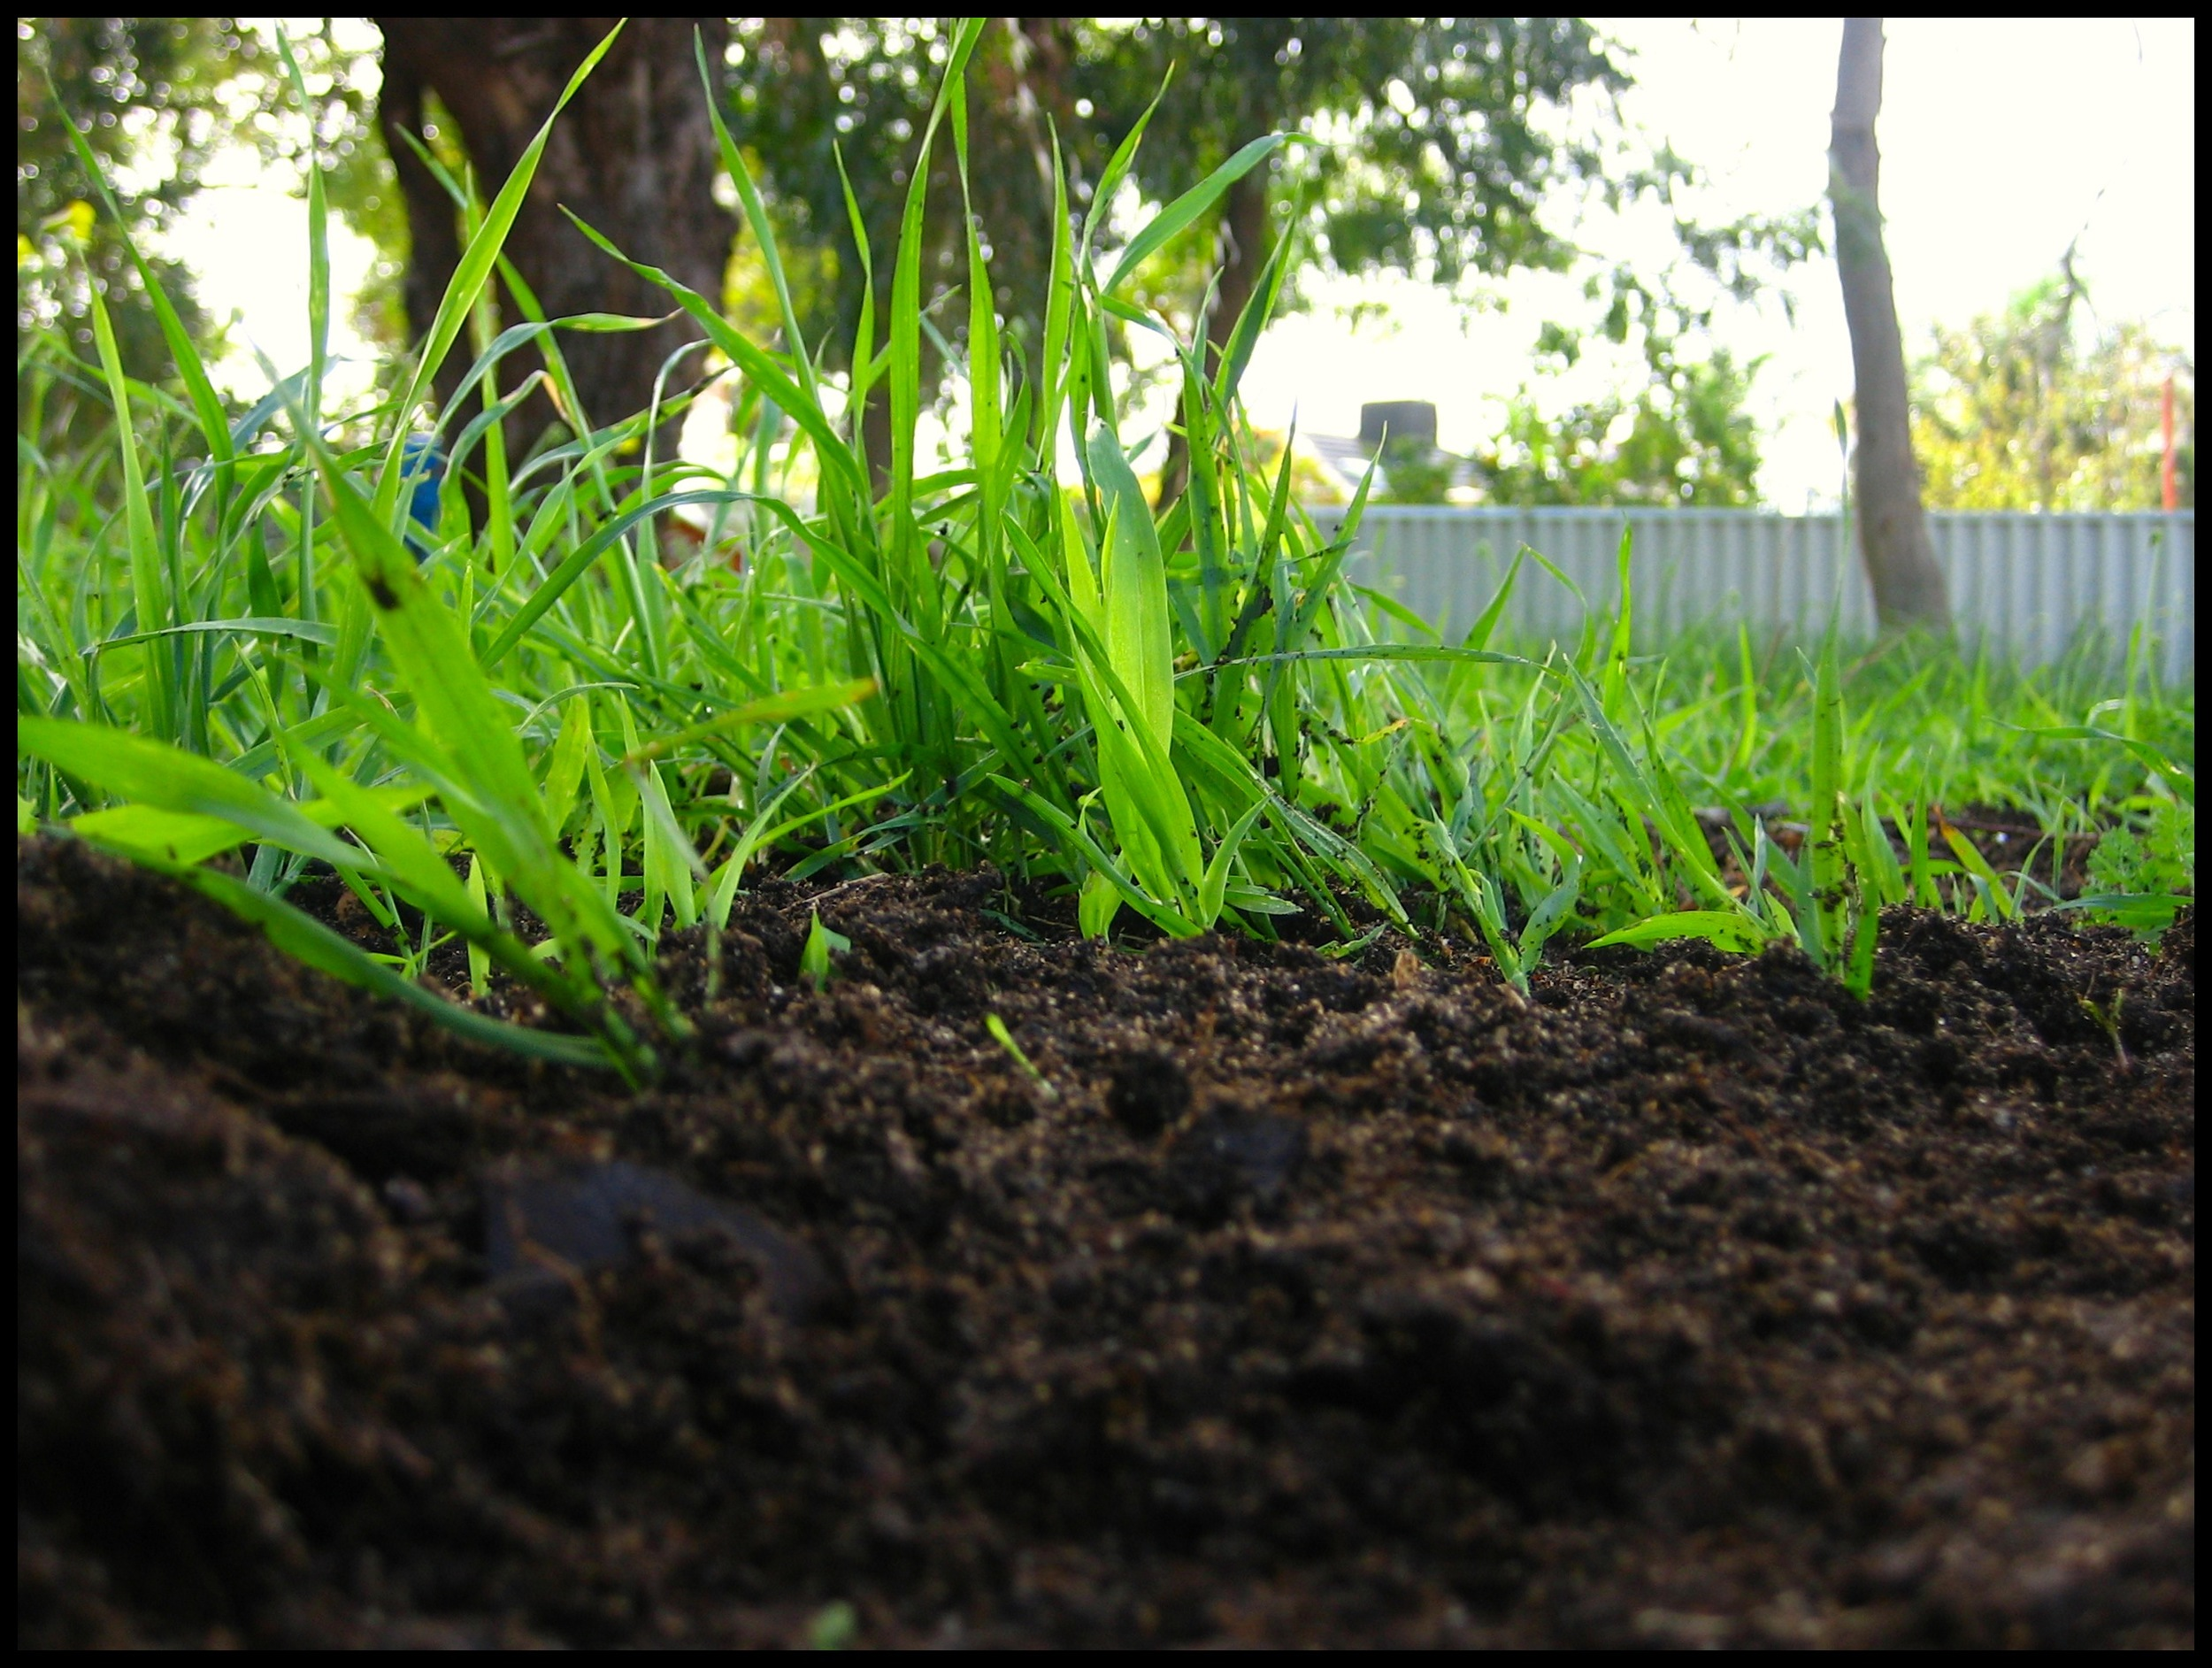 Compost  by Diana House/CC BY